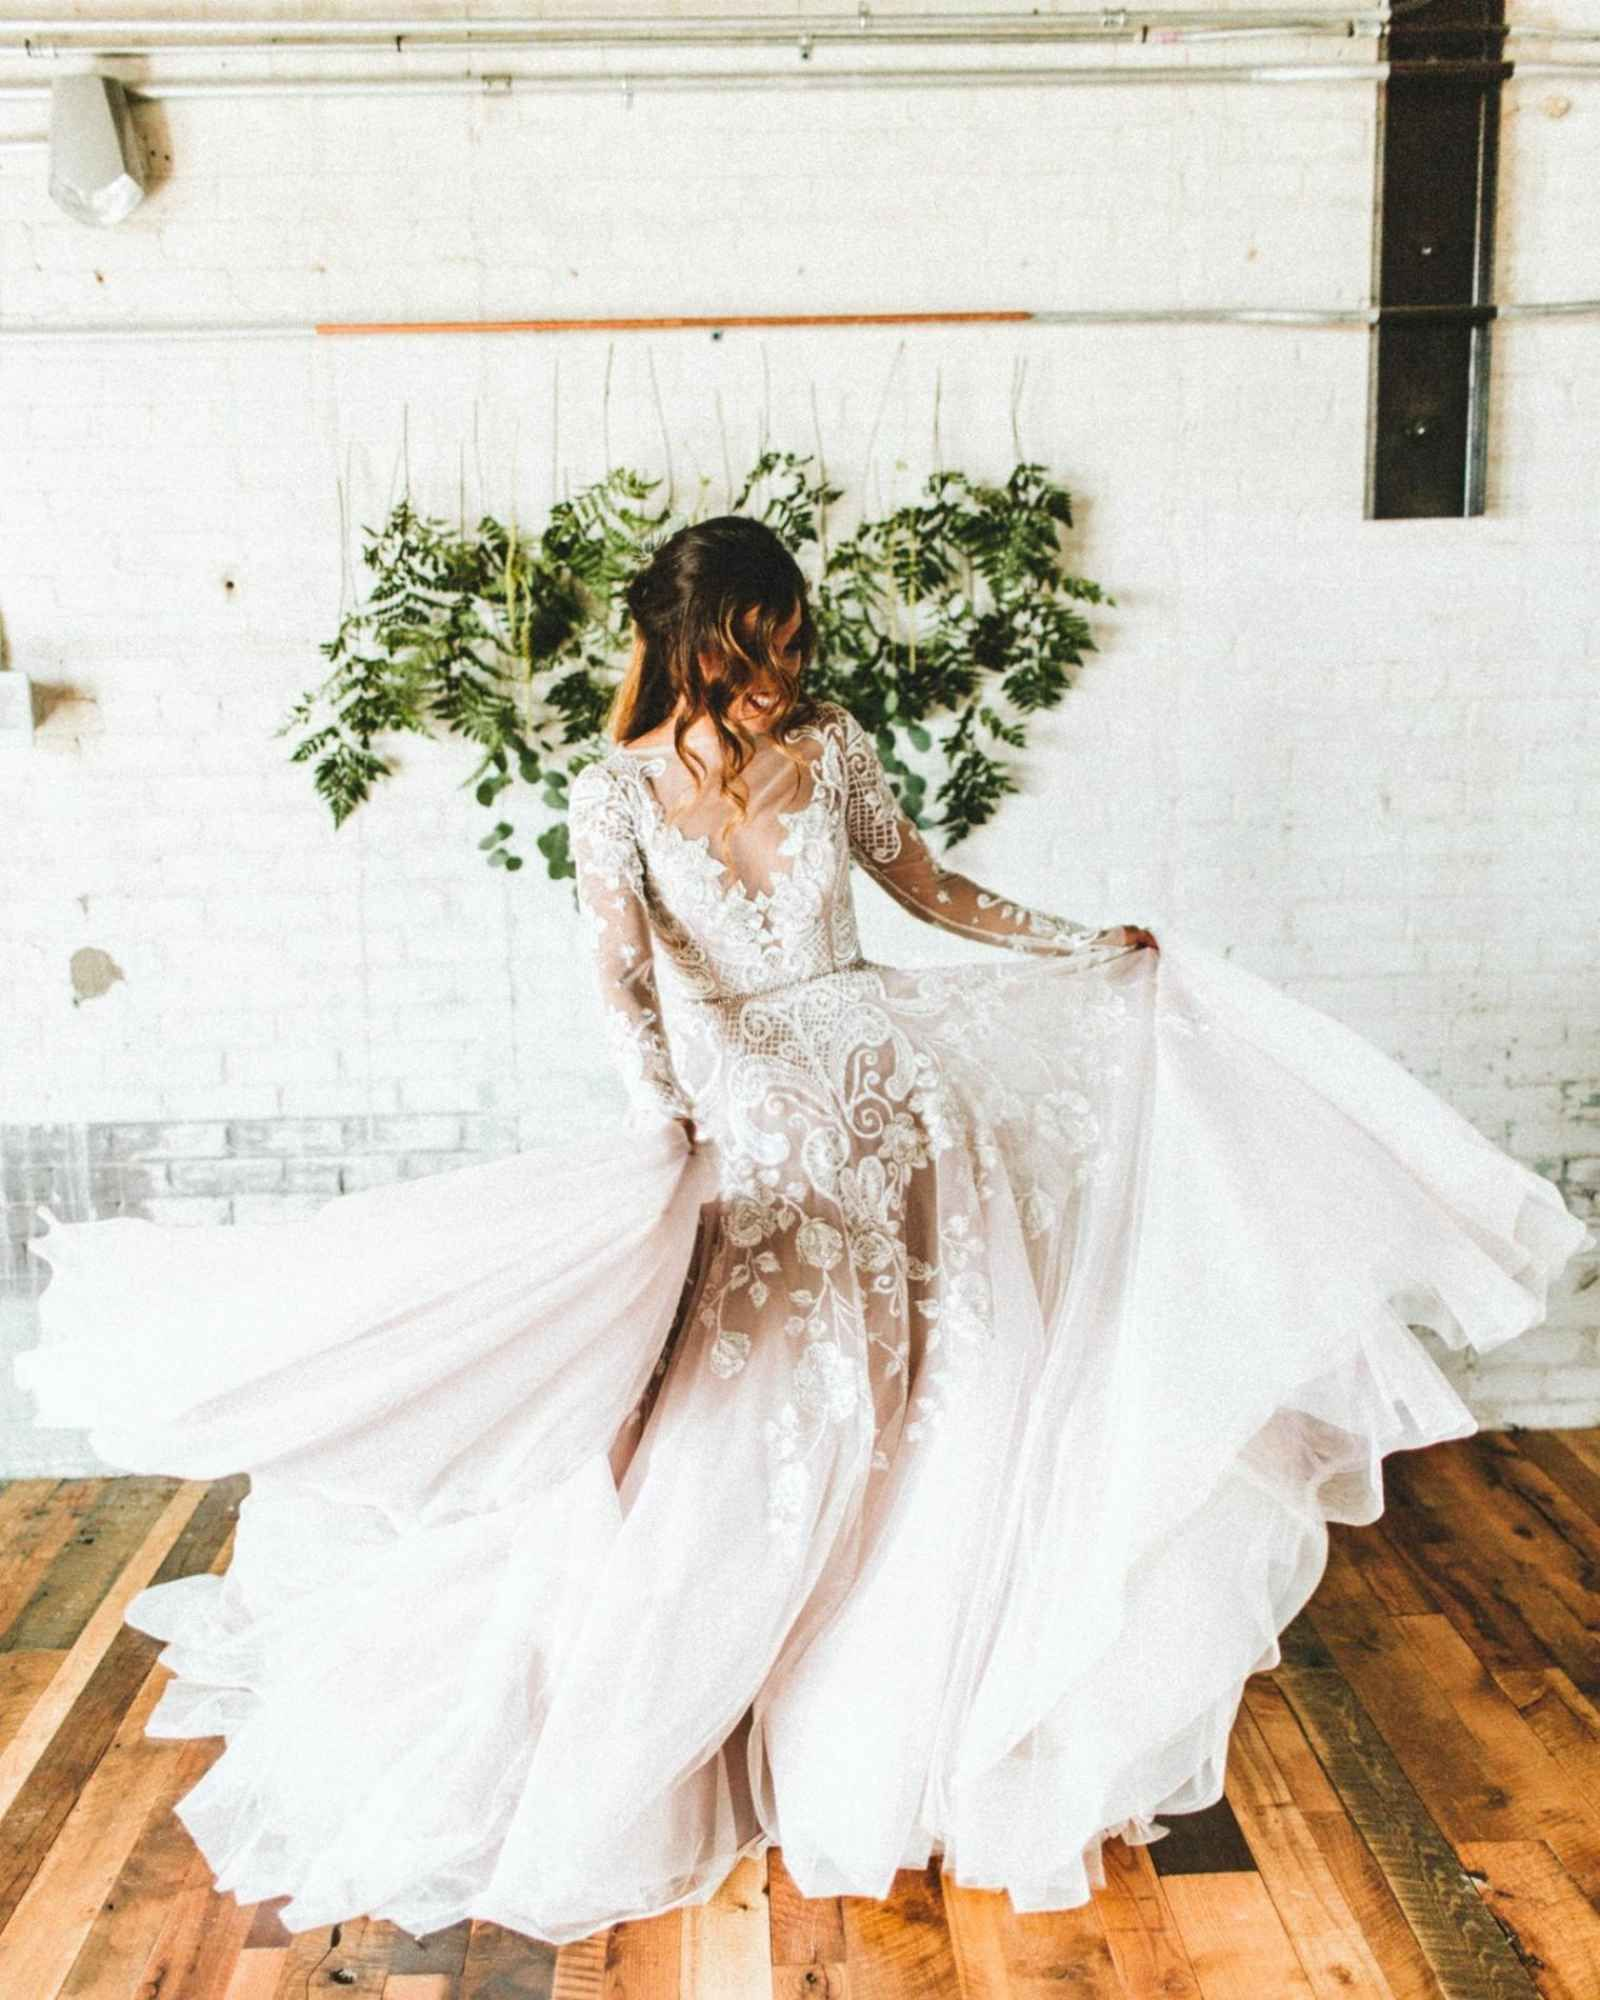 Wedding decorations beach december 2018 Long sleeve lace Hayley Paige wedding dress  Our Favorite